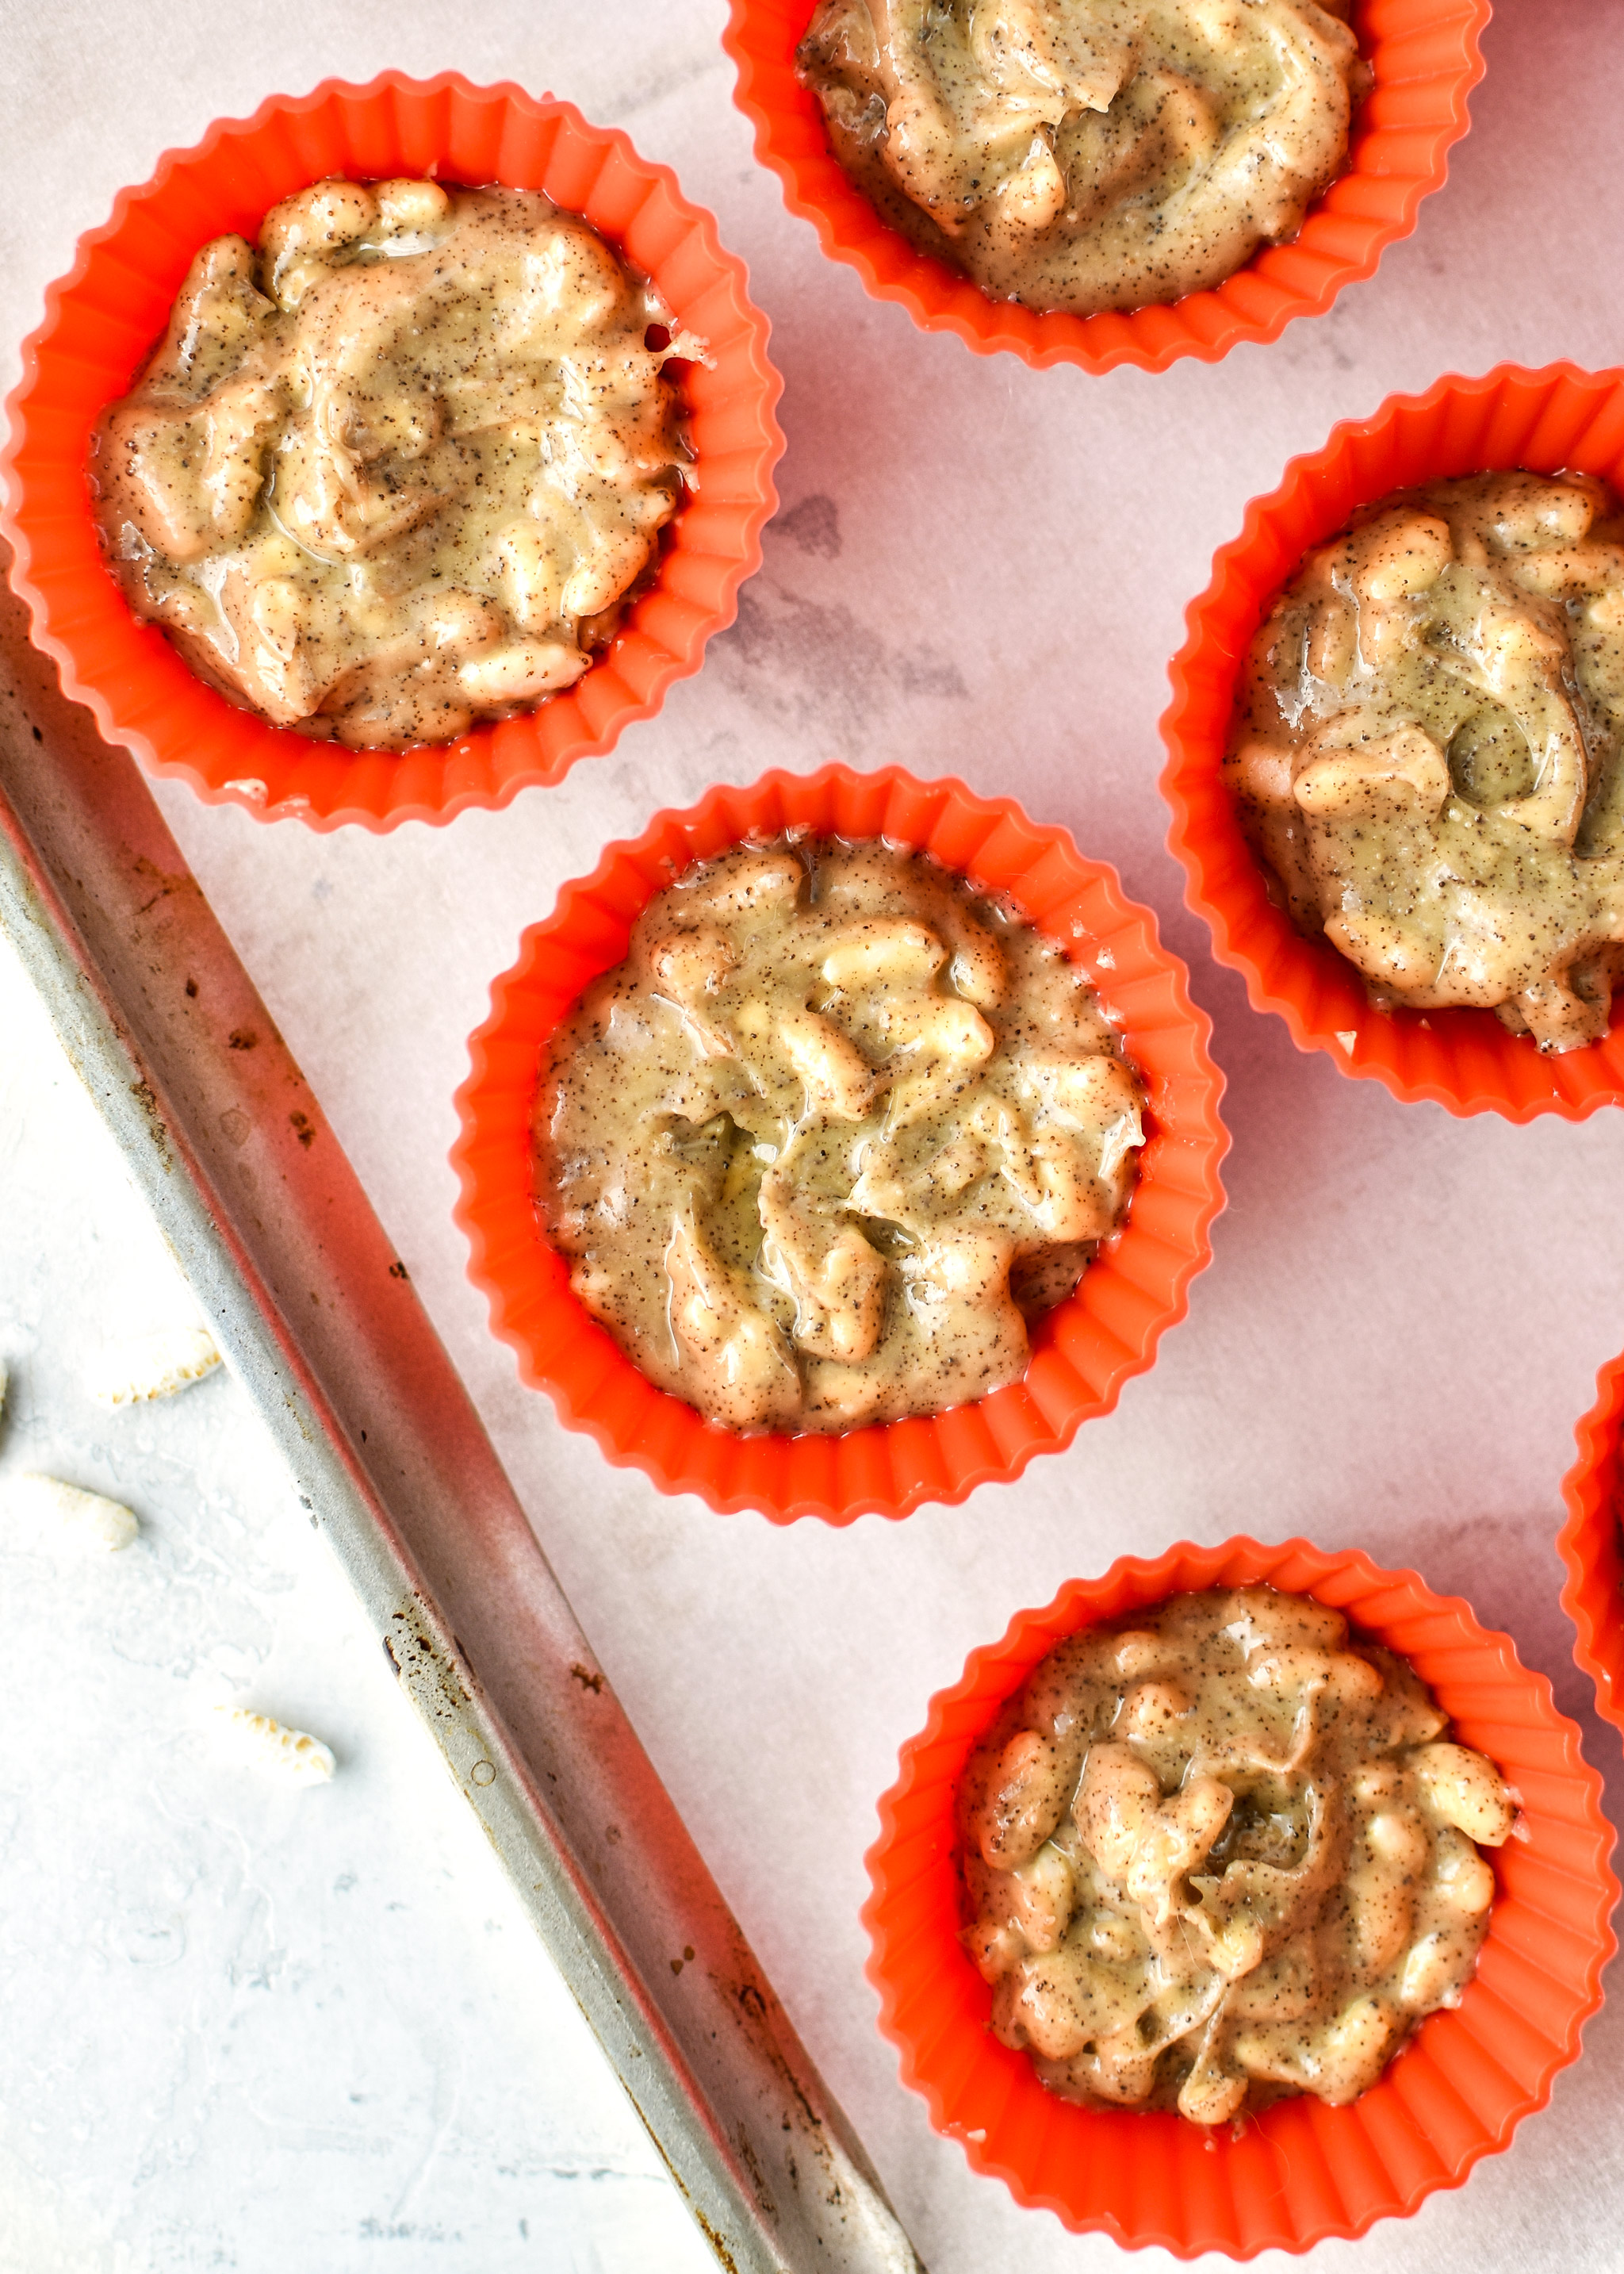 Espresso Crunch Cashew Butter Cups made in silicone baking cups.